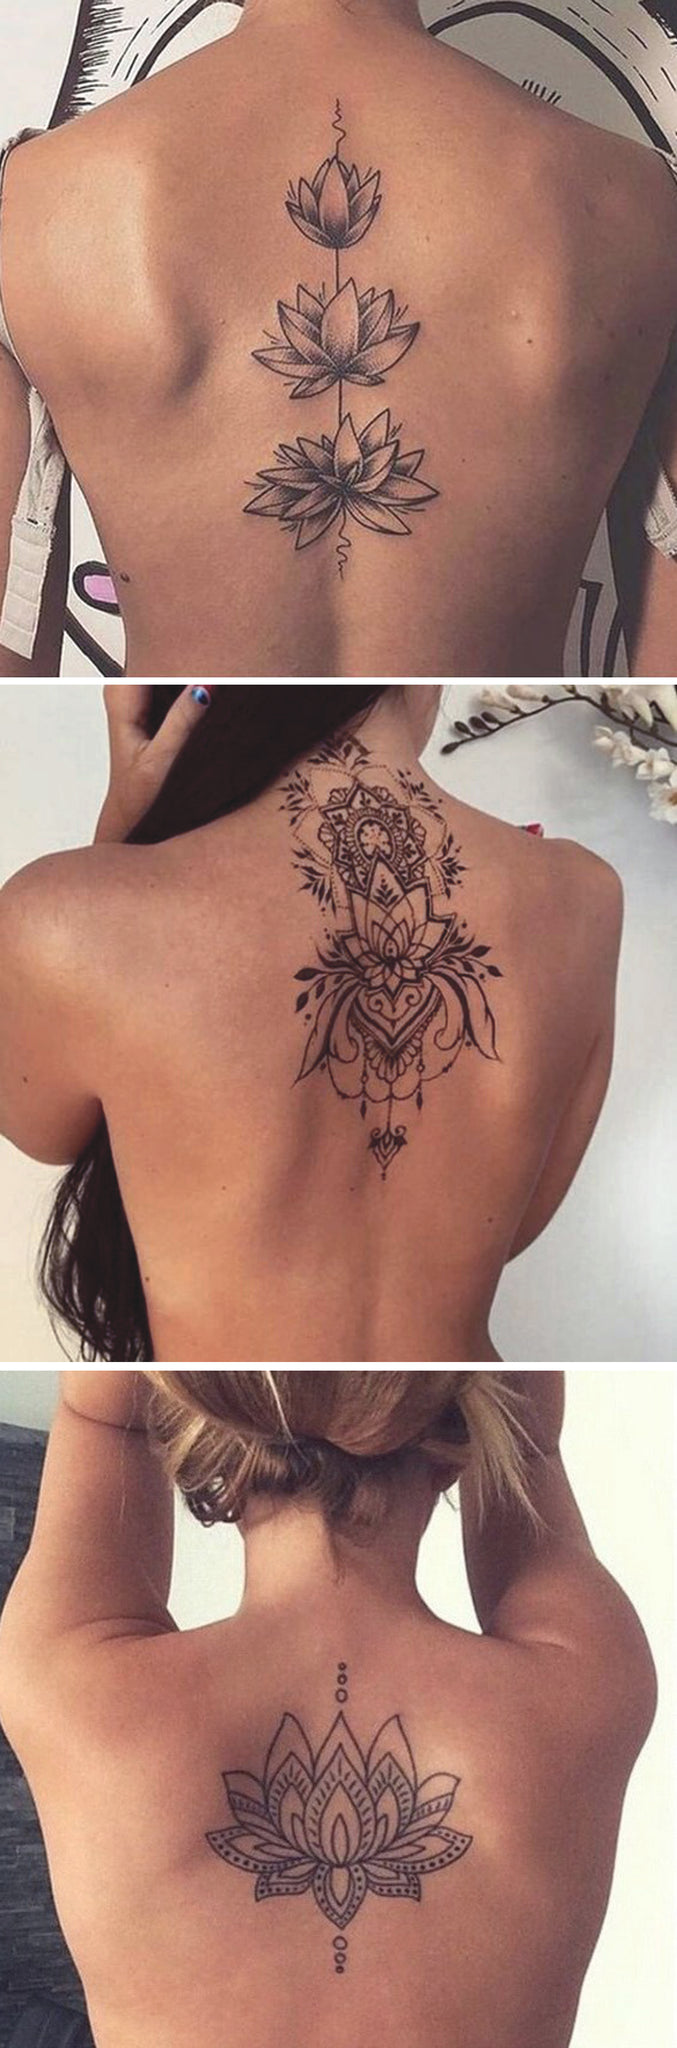 50 Inspirational Spine Tattoo Ideas For Women With Meaning